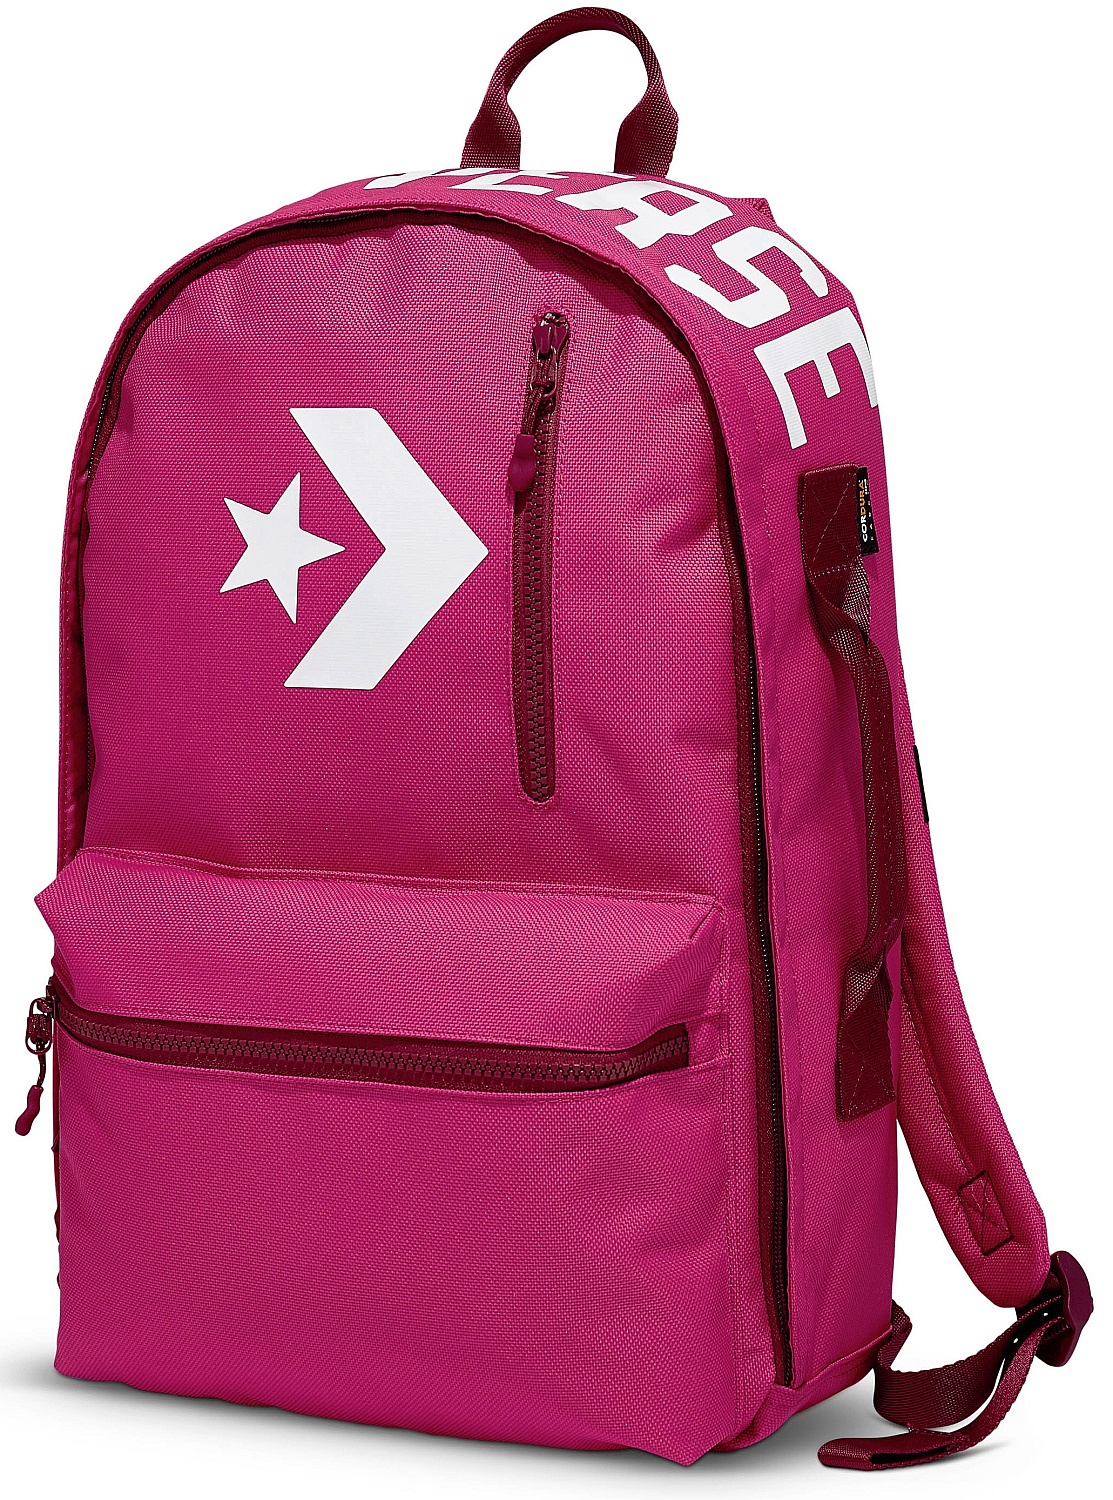 Backpack Converse Street 22 10006916 A03 Pink Pop Pomegranate Red White